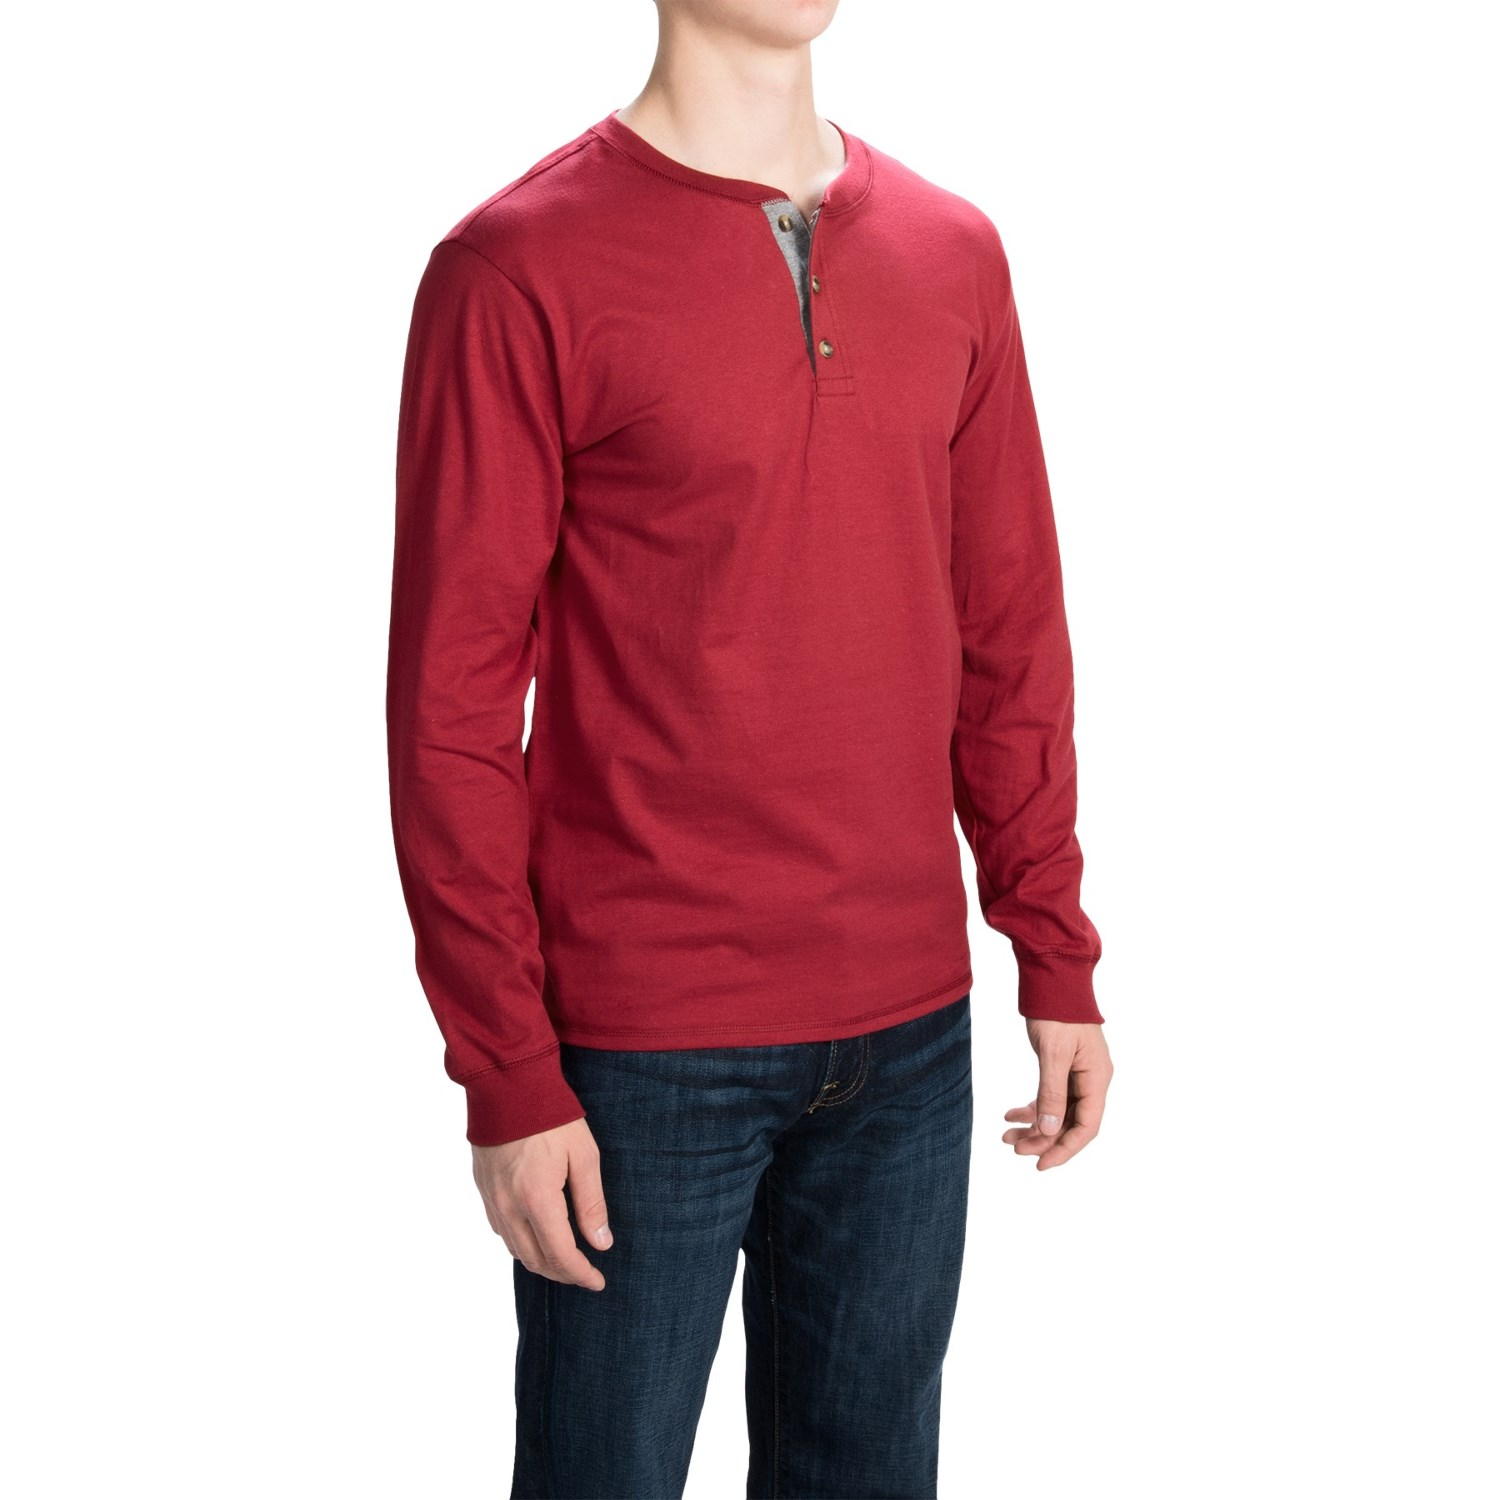 Mens hanes beefy 100 cotton tall long sleeve t shirt xlt for Mens 100 cotton long sleeve t shirts